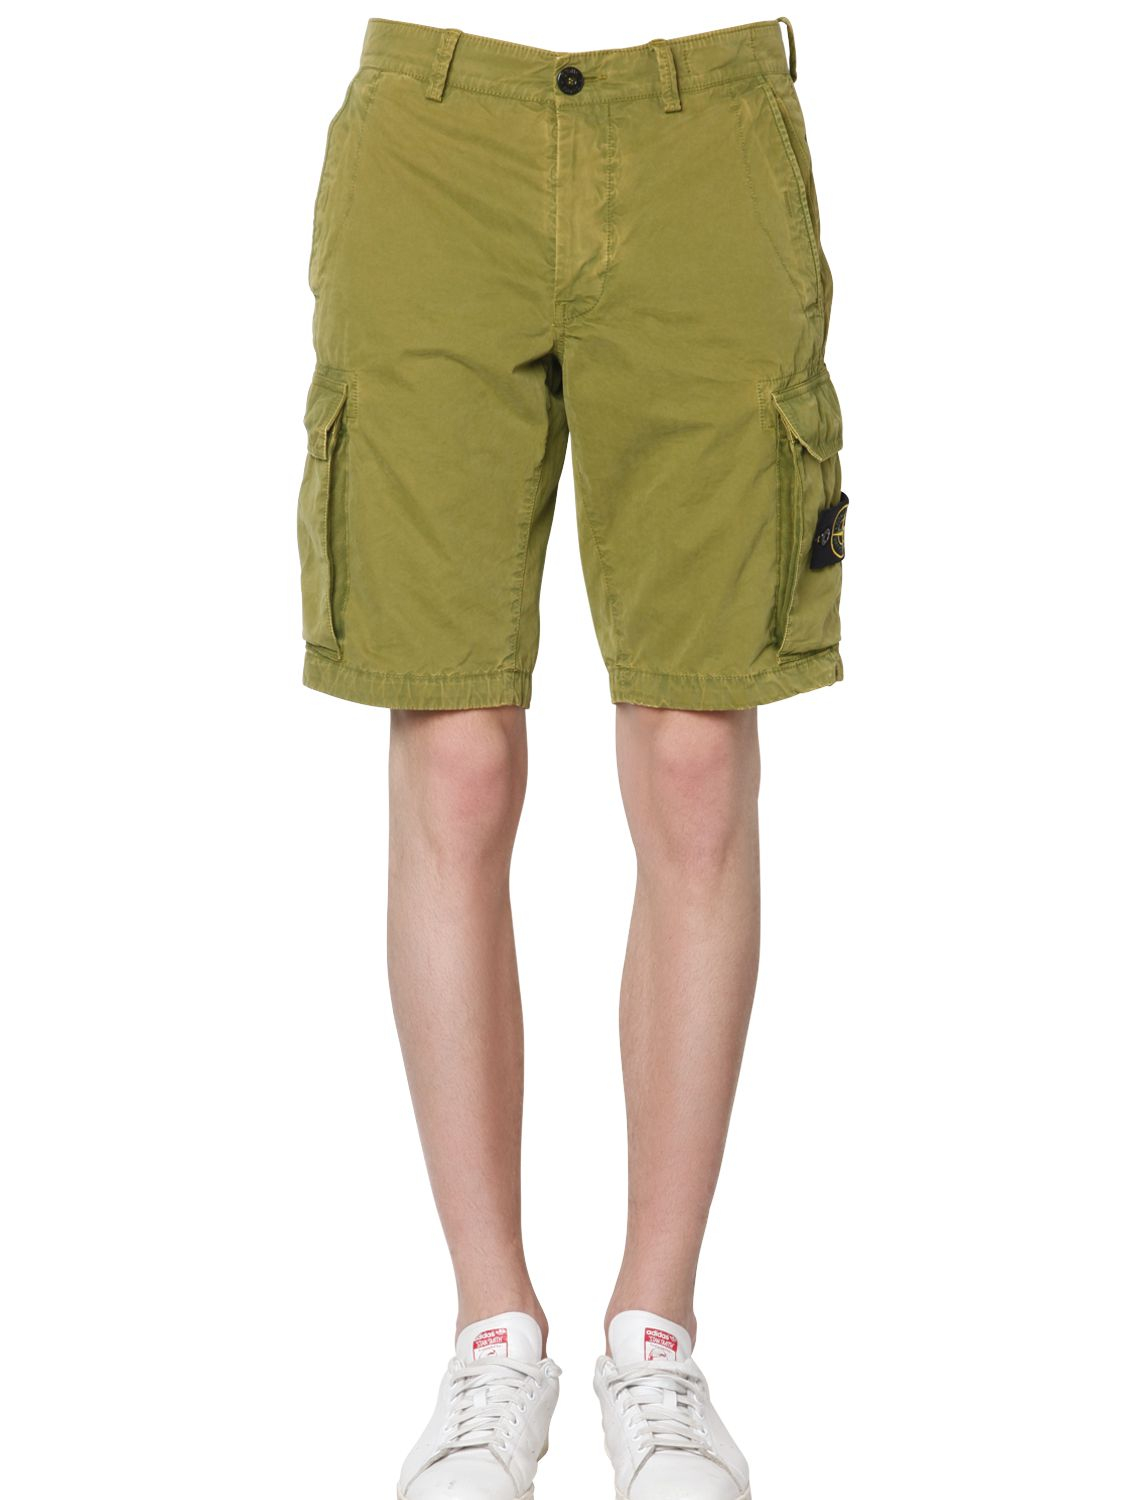 stone island cotton cargo shorts in green for men lyst. Black Bedroom Furniture Sets. Home Design Ideas